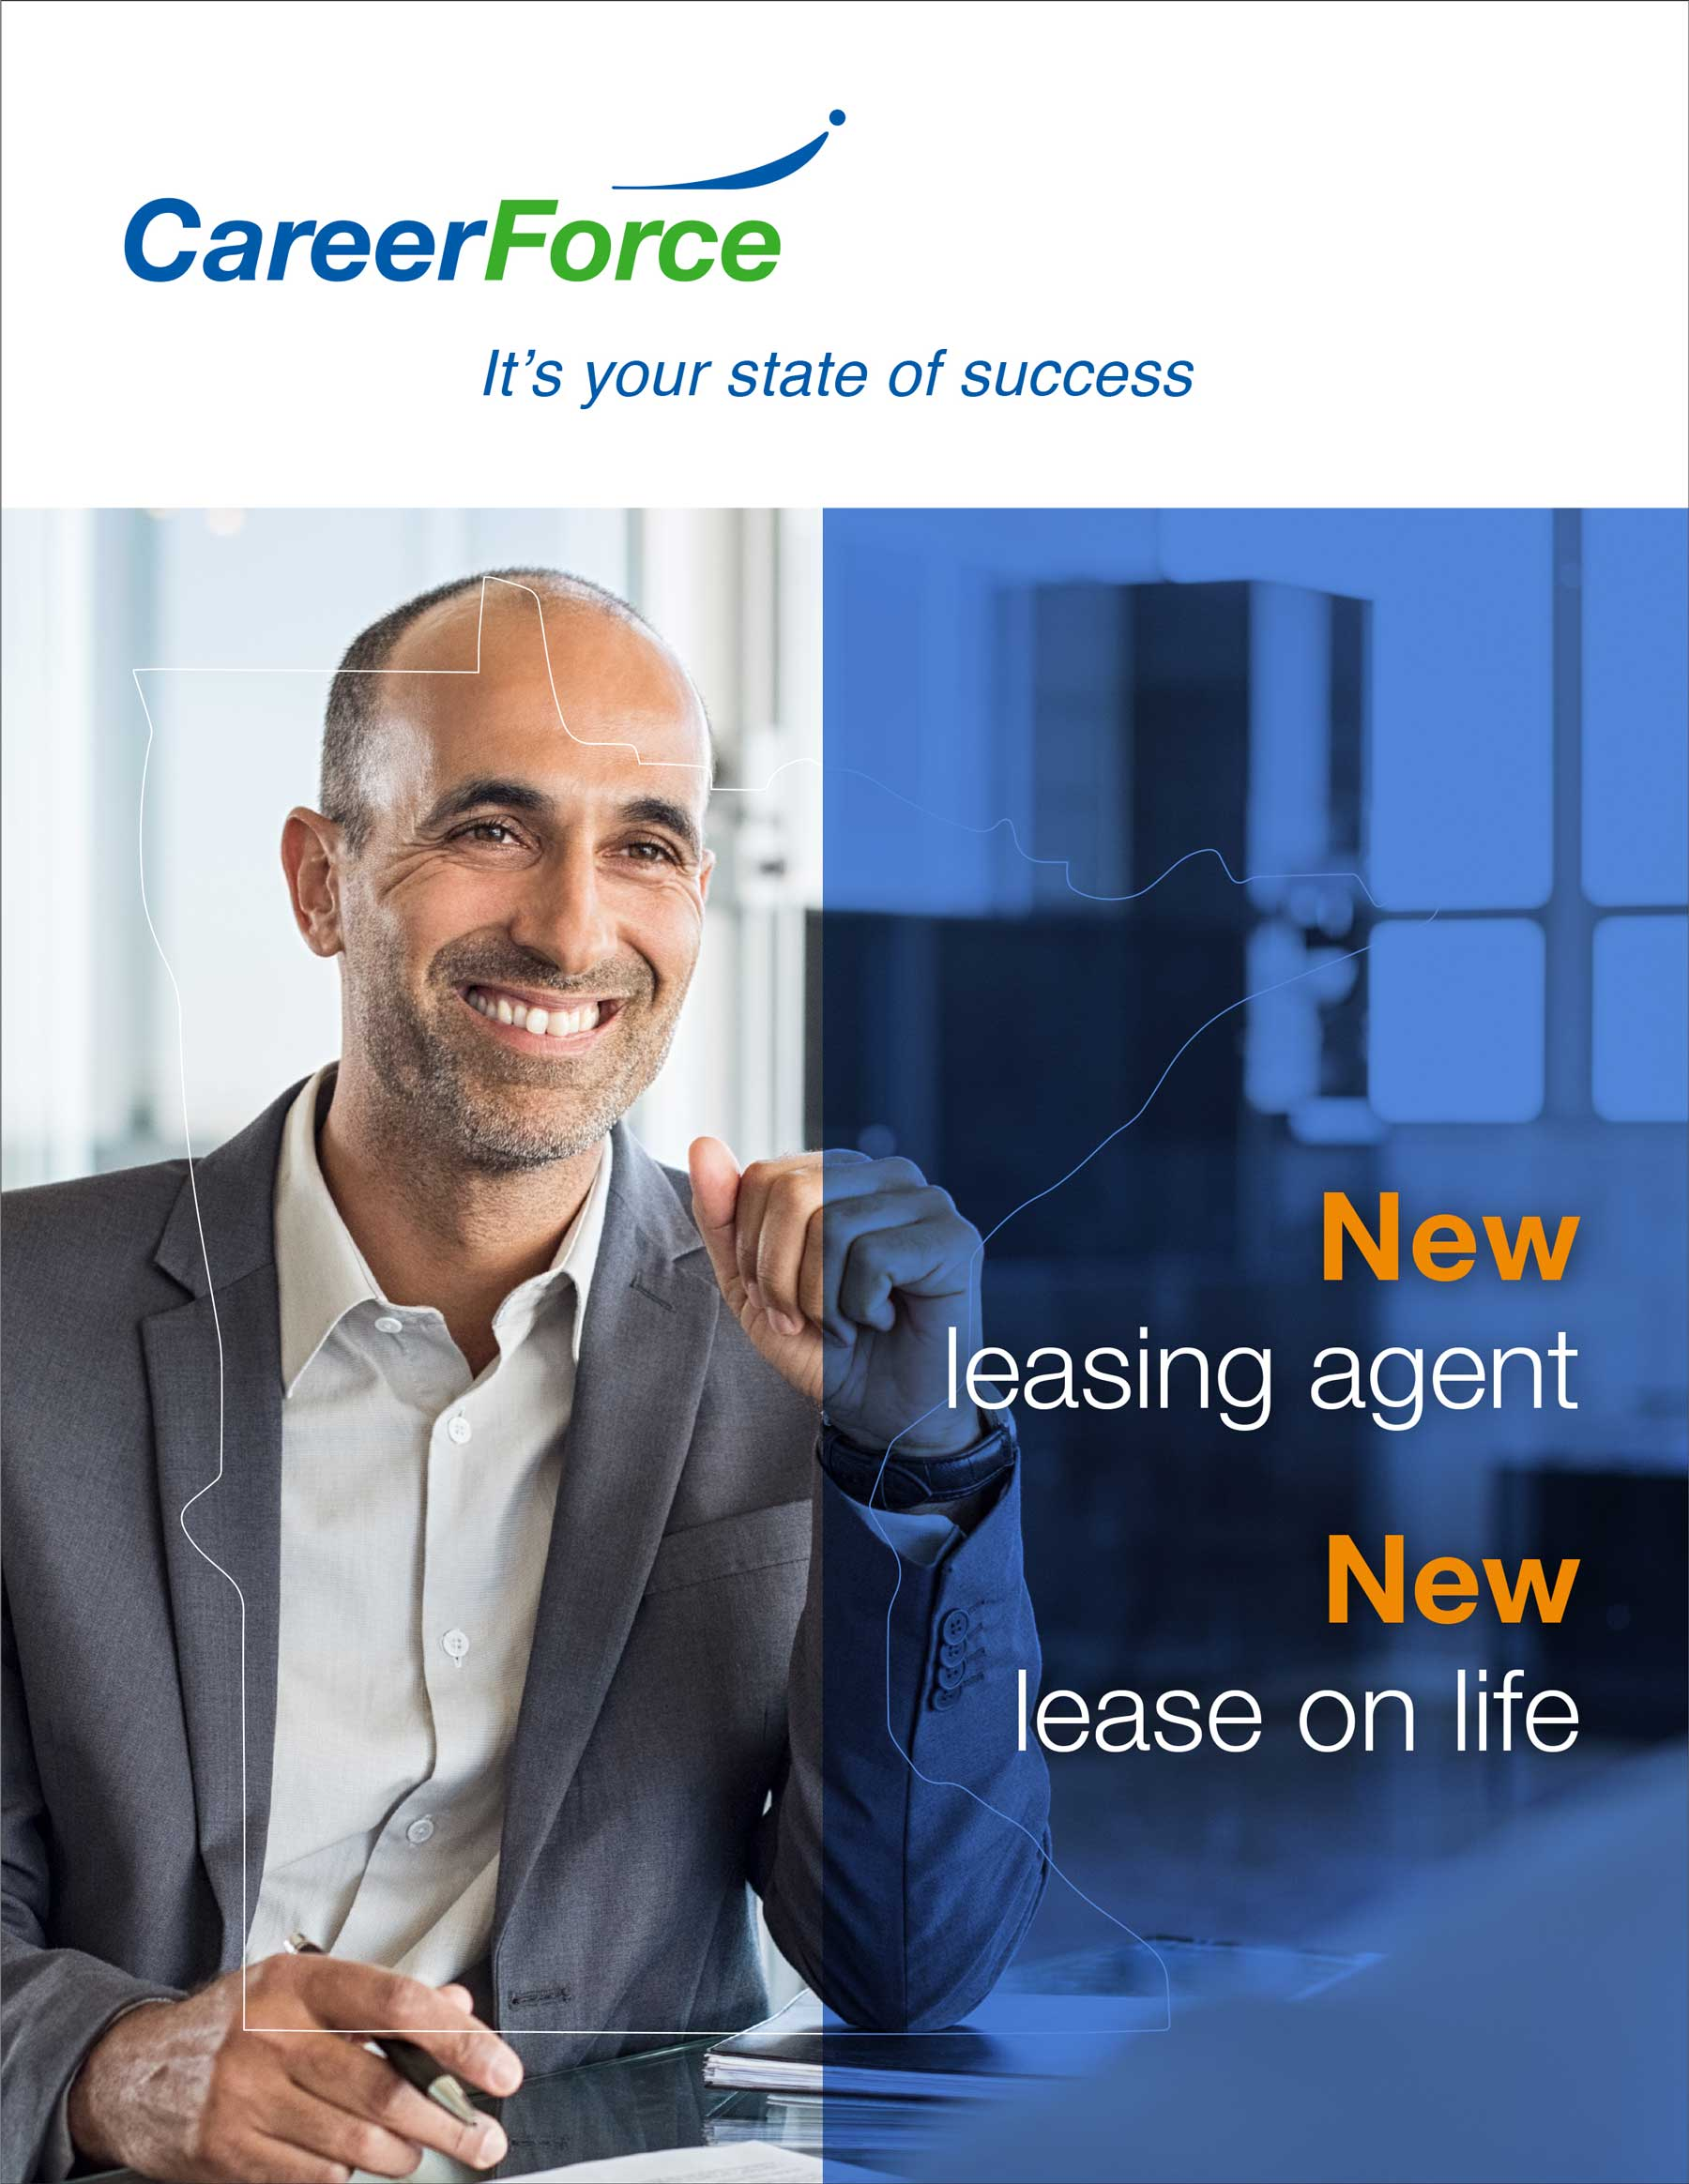 Poster with smiling man titled: new leasing agent, new lease on life